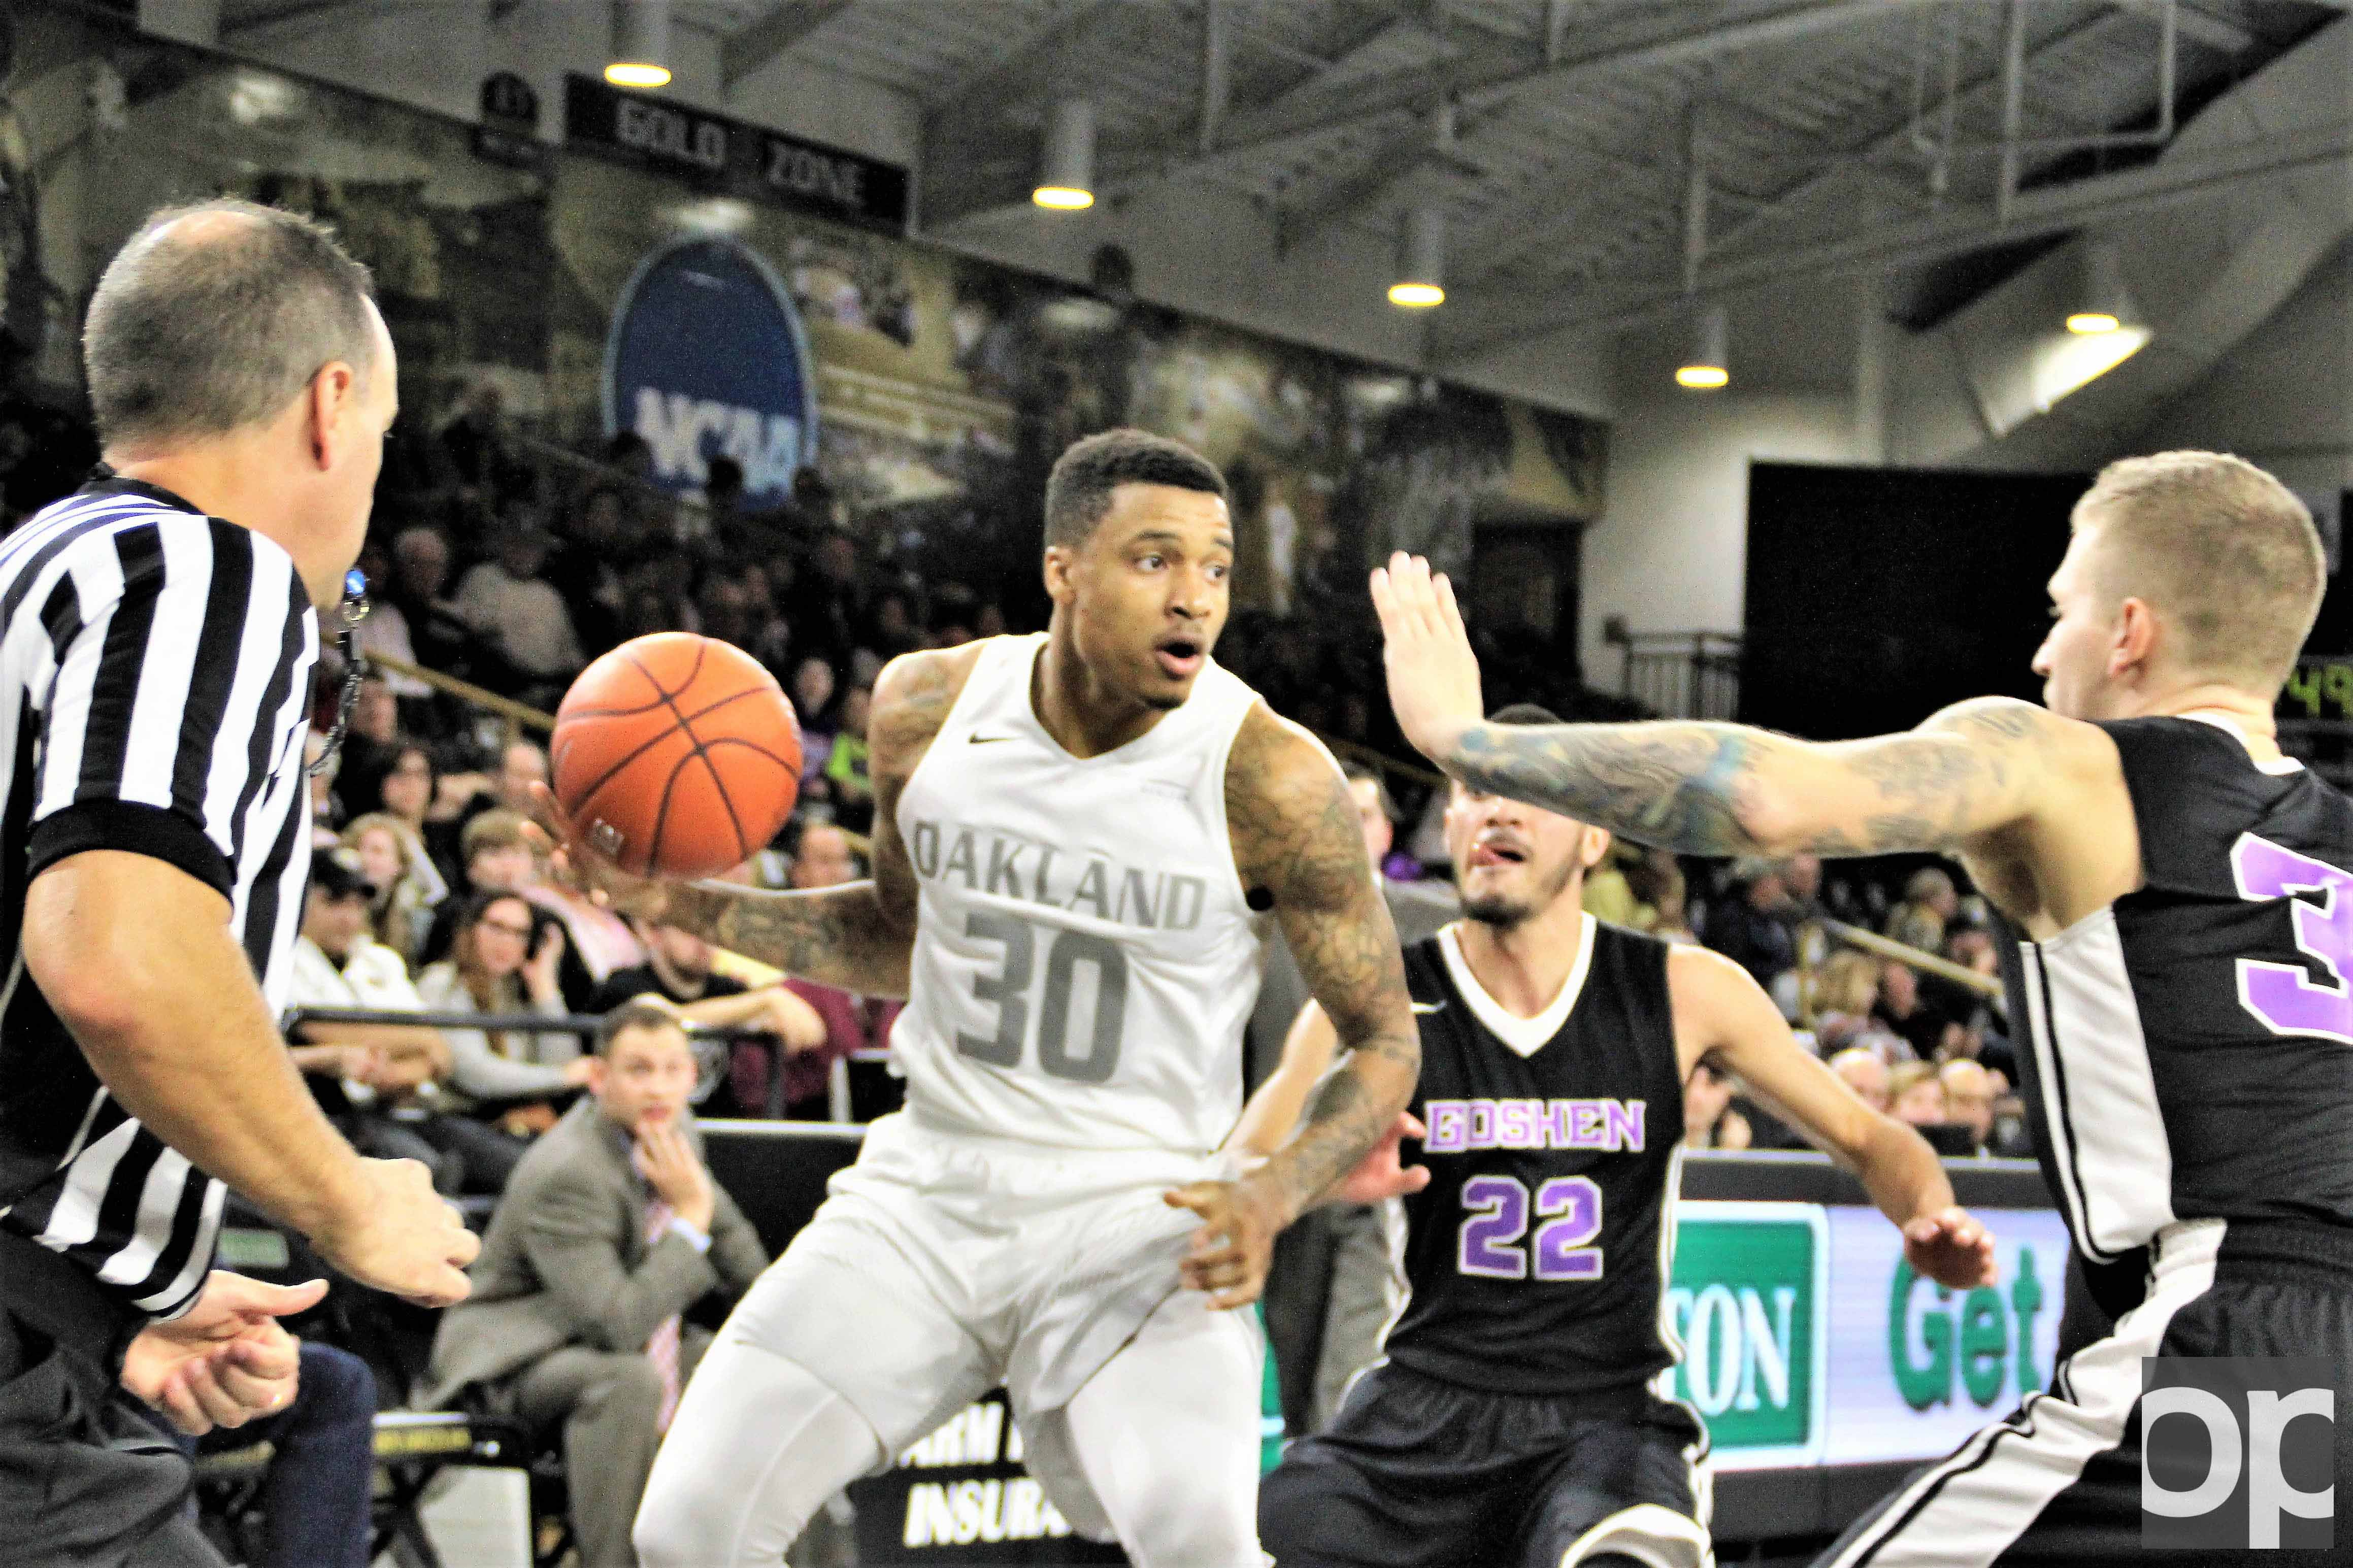 Sherron Dorsey-Walker (20 points) and Martez Walker (21 points) combined scored 41 points to lead the Golden Grizzlies into its third victory of the season. Oakland  defeated Goshen College 102-59.